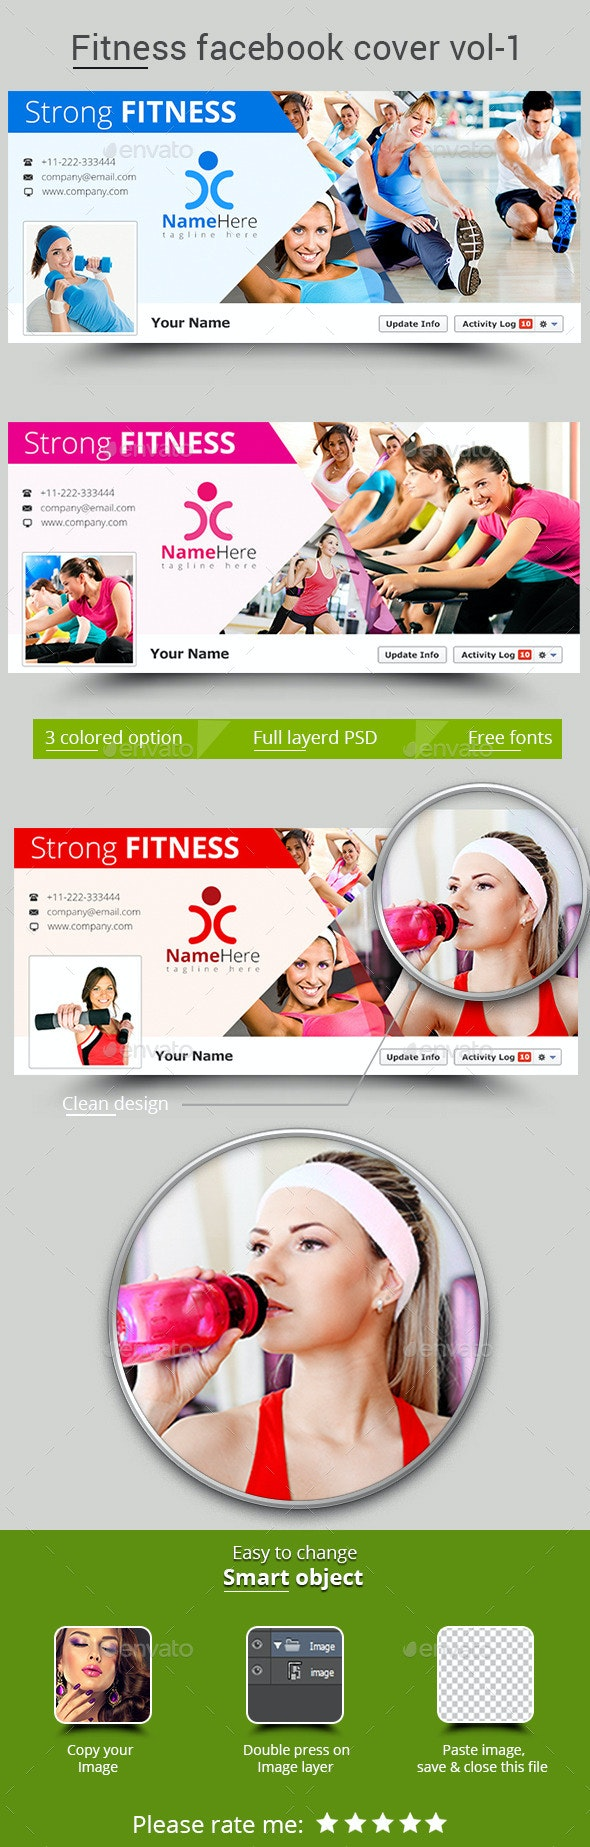 Fitness Facebook Cover Vol- 1